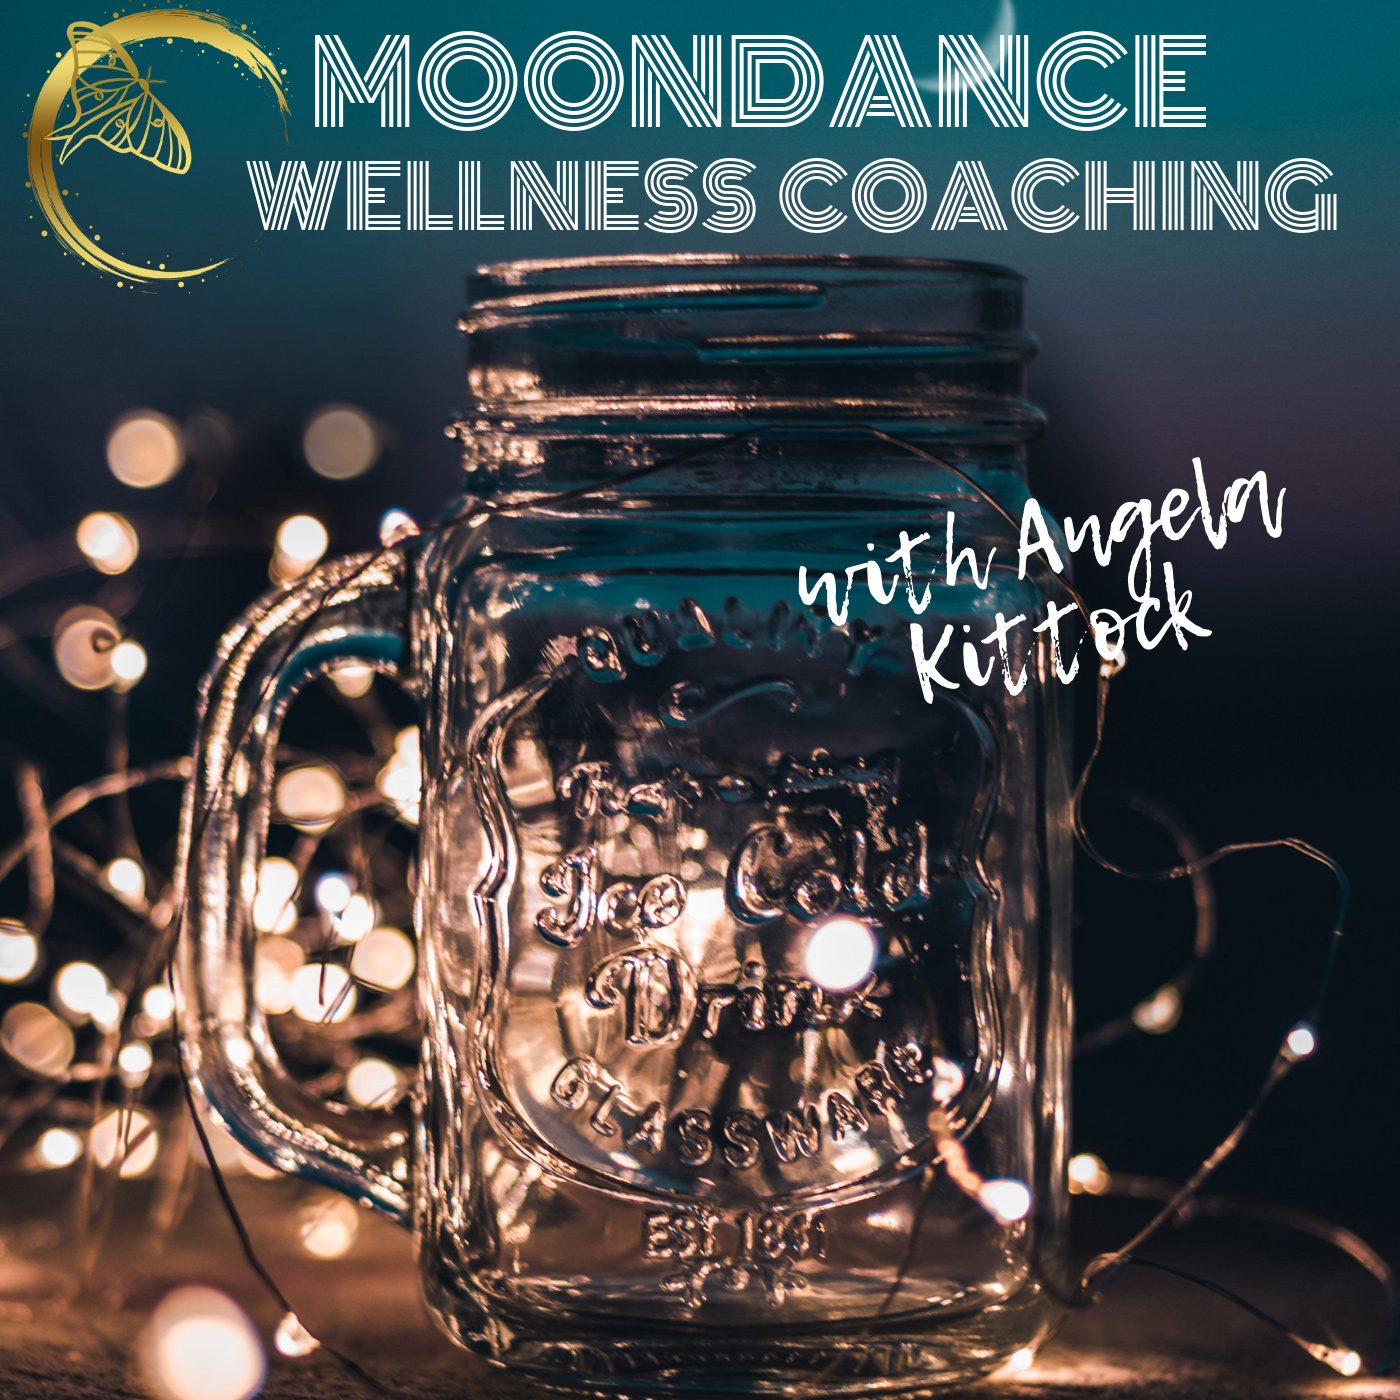 Moondance Wellness Coaching with Angela Kittock